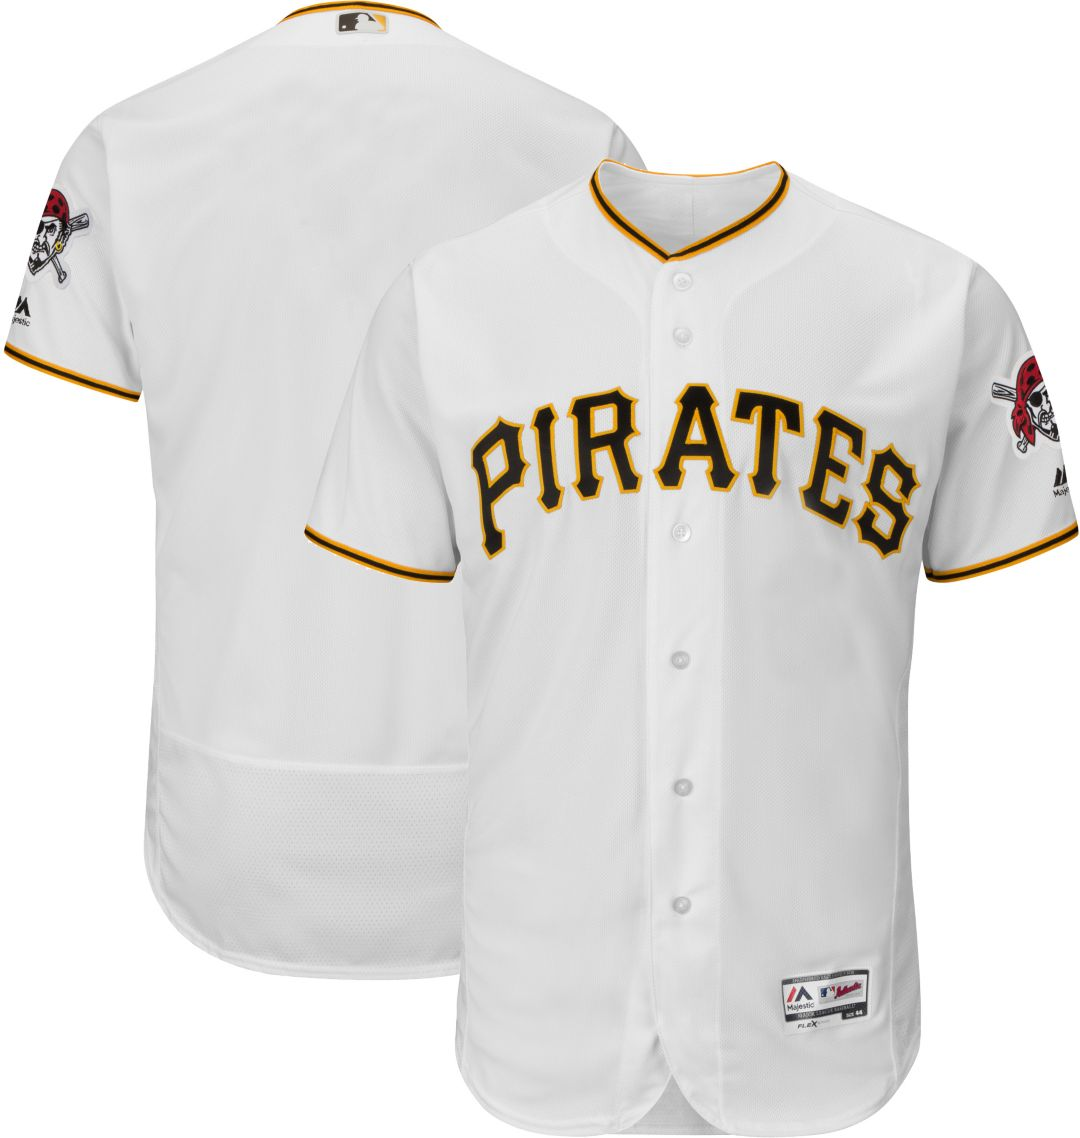 the best attitude 540a4 b5367 Majestic Men's Authentic Pittsburgh Pirates Home White Flex Base On-Field  Jersey